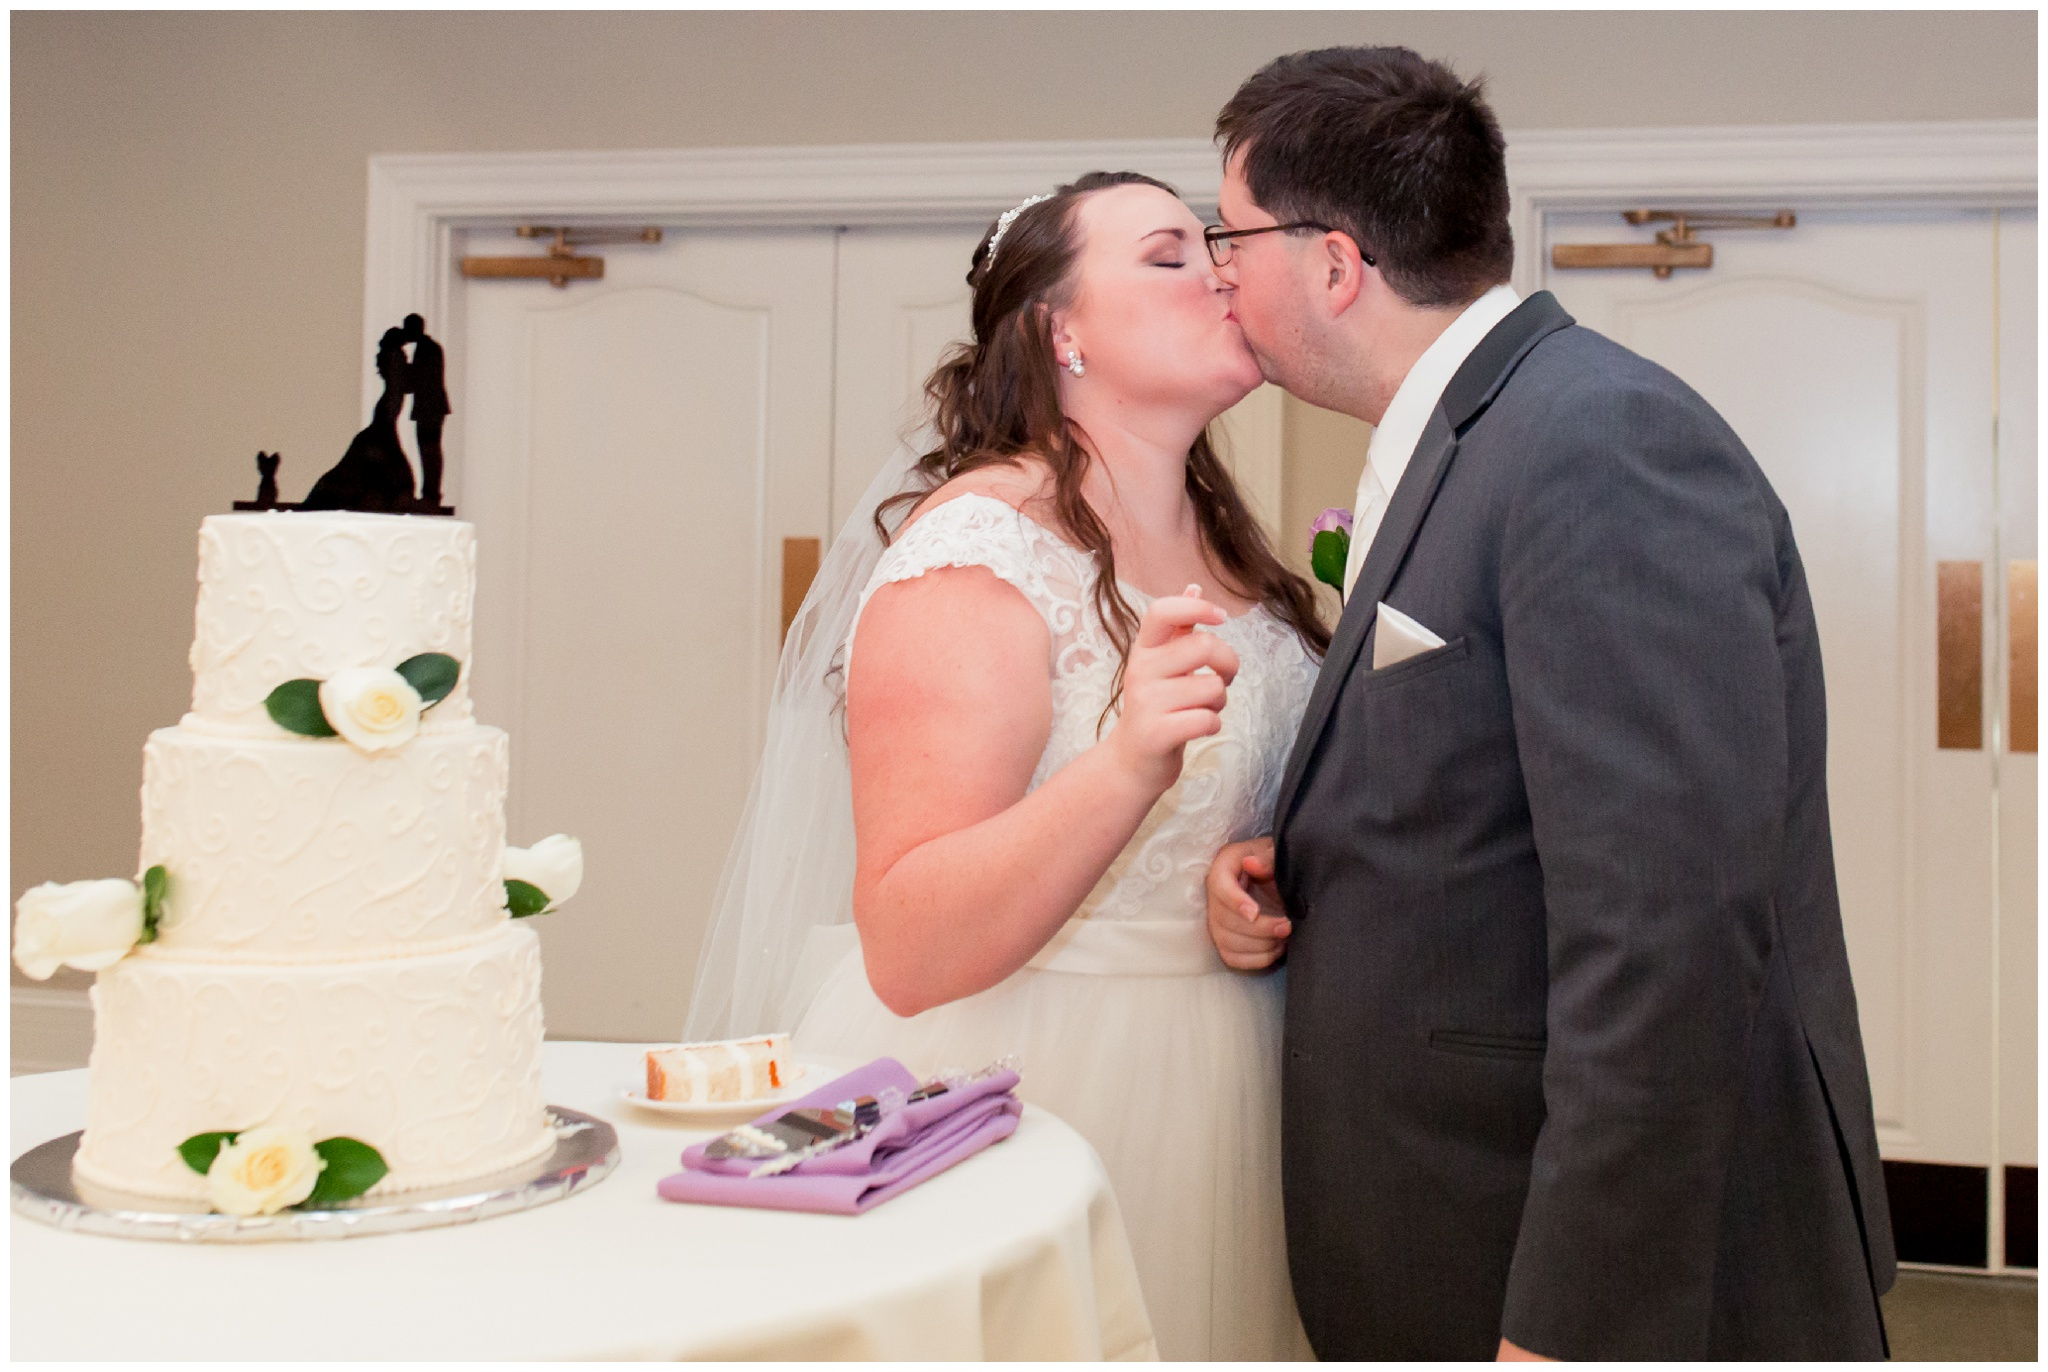 bride and groom kiss after cake cutting at Bel Air Events in Kokomo Indiana